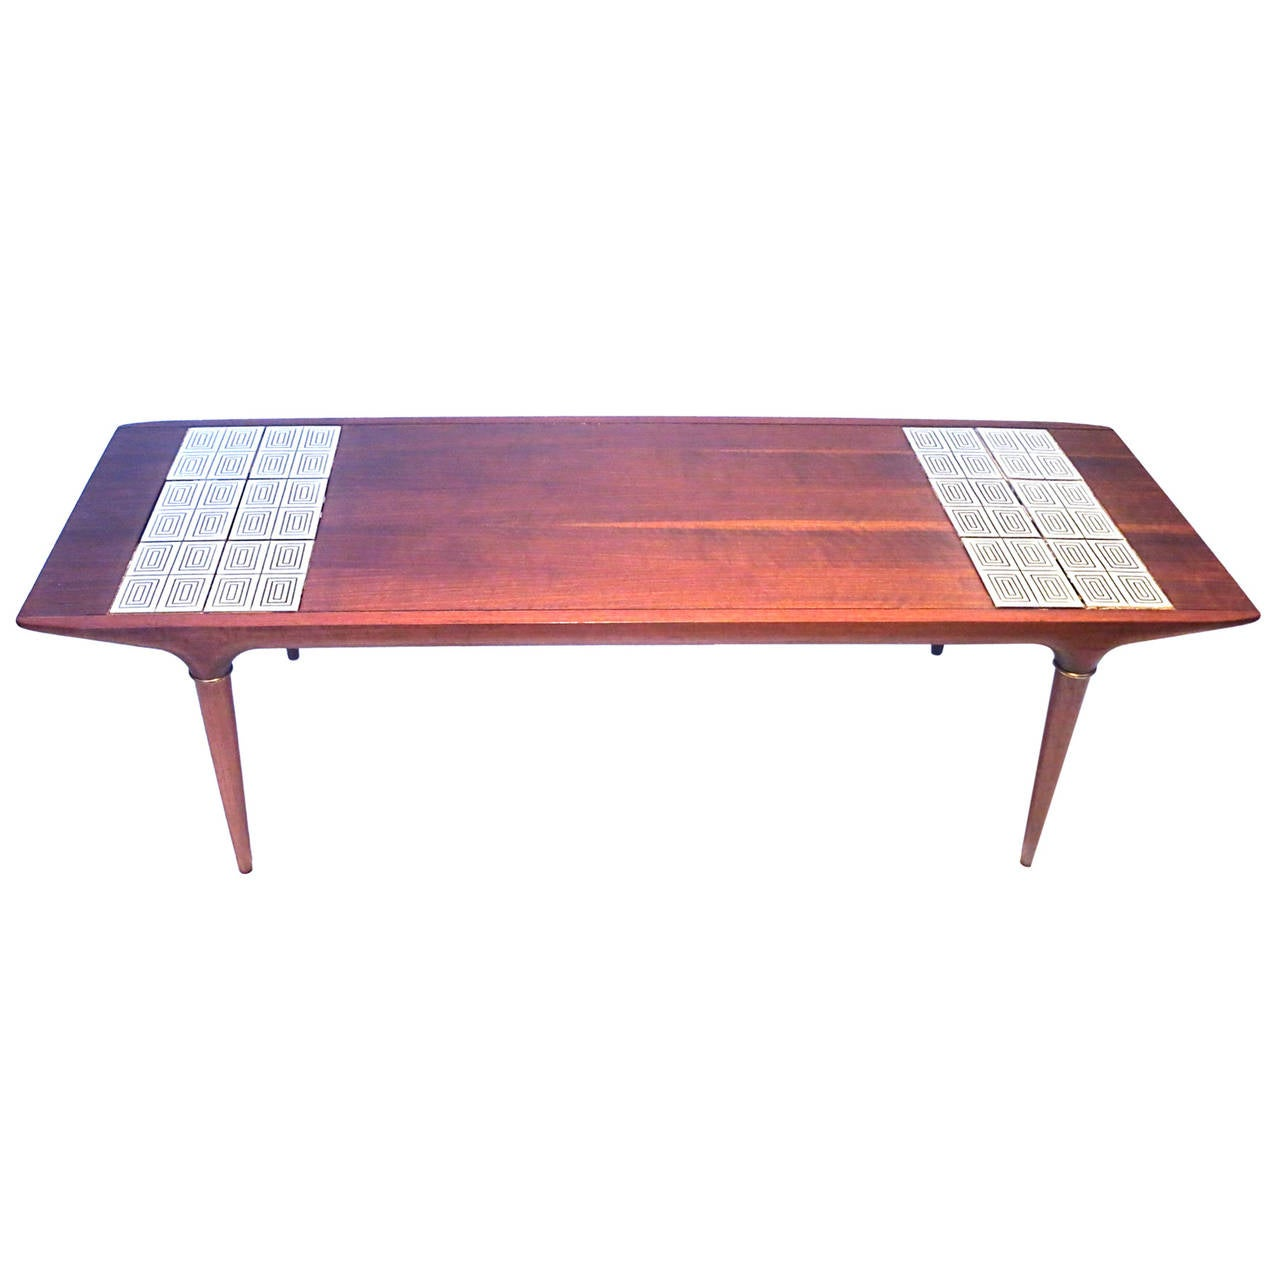 1950s american modern walnut coffee table with insert tile atomic